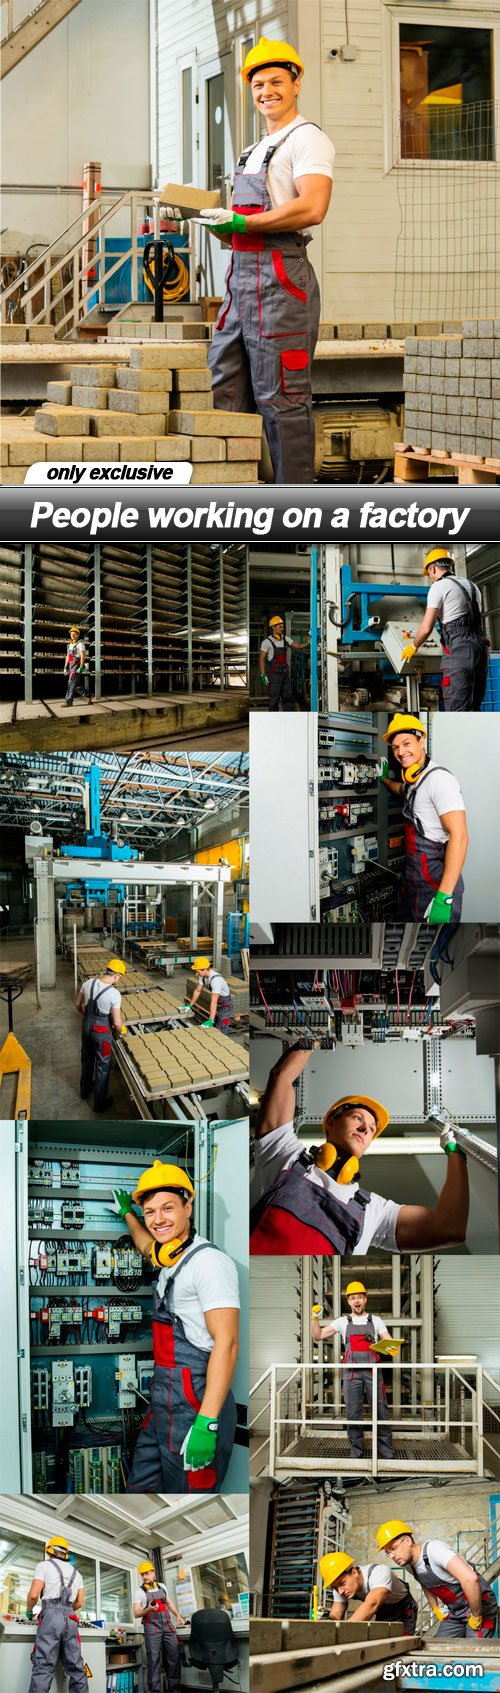 People working on a factory - 10 UHQ JPEG